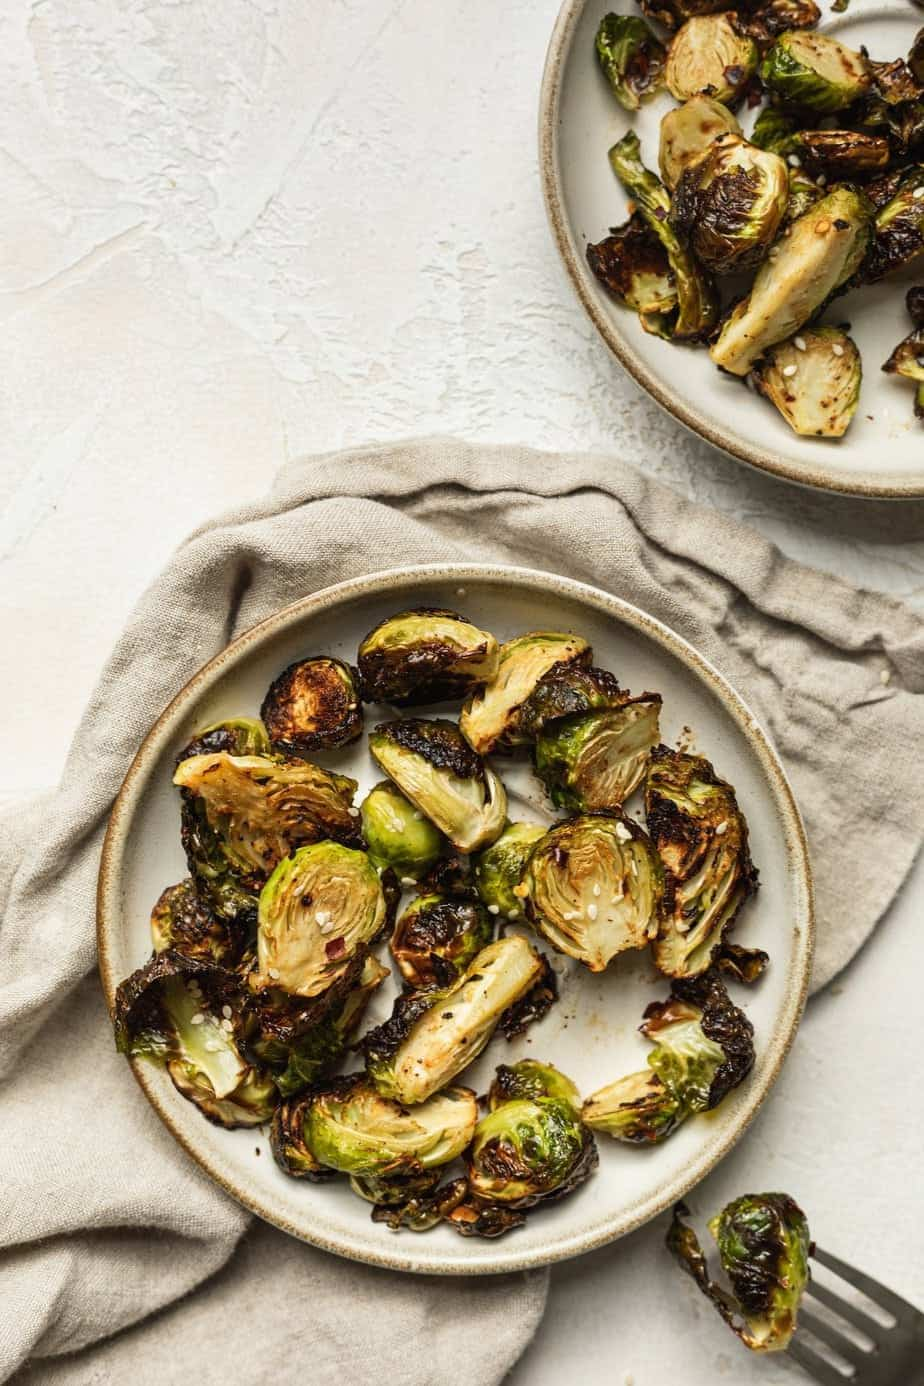 two plates with air fryer brussels sprouts and a fork